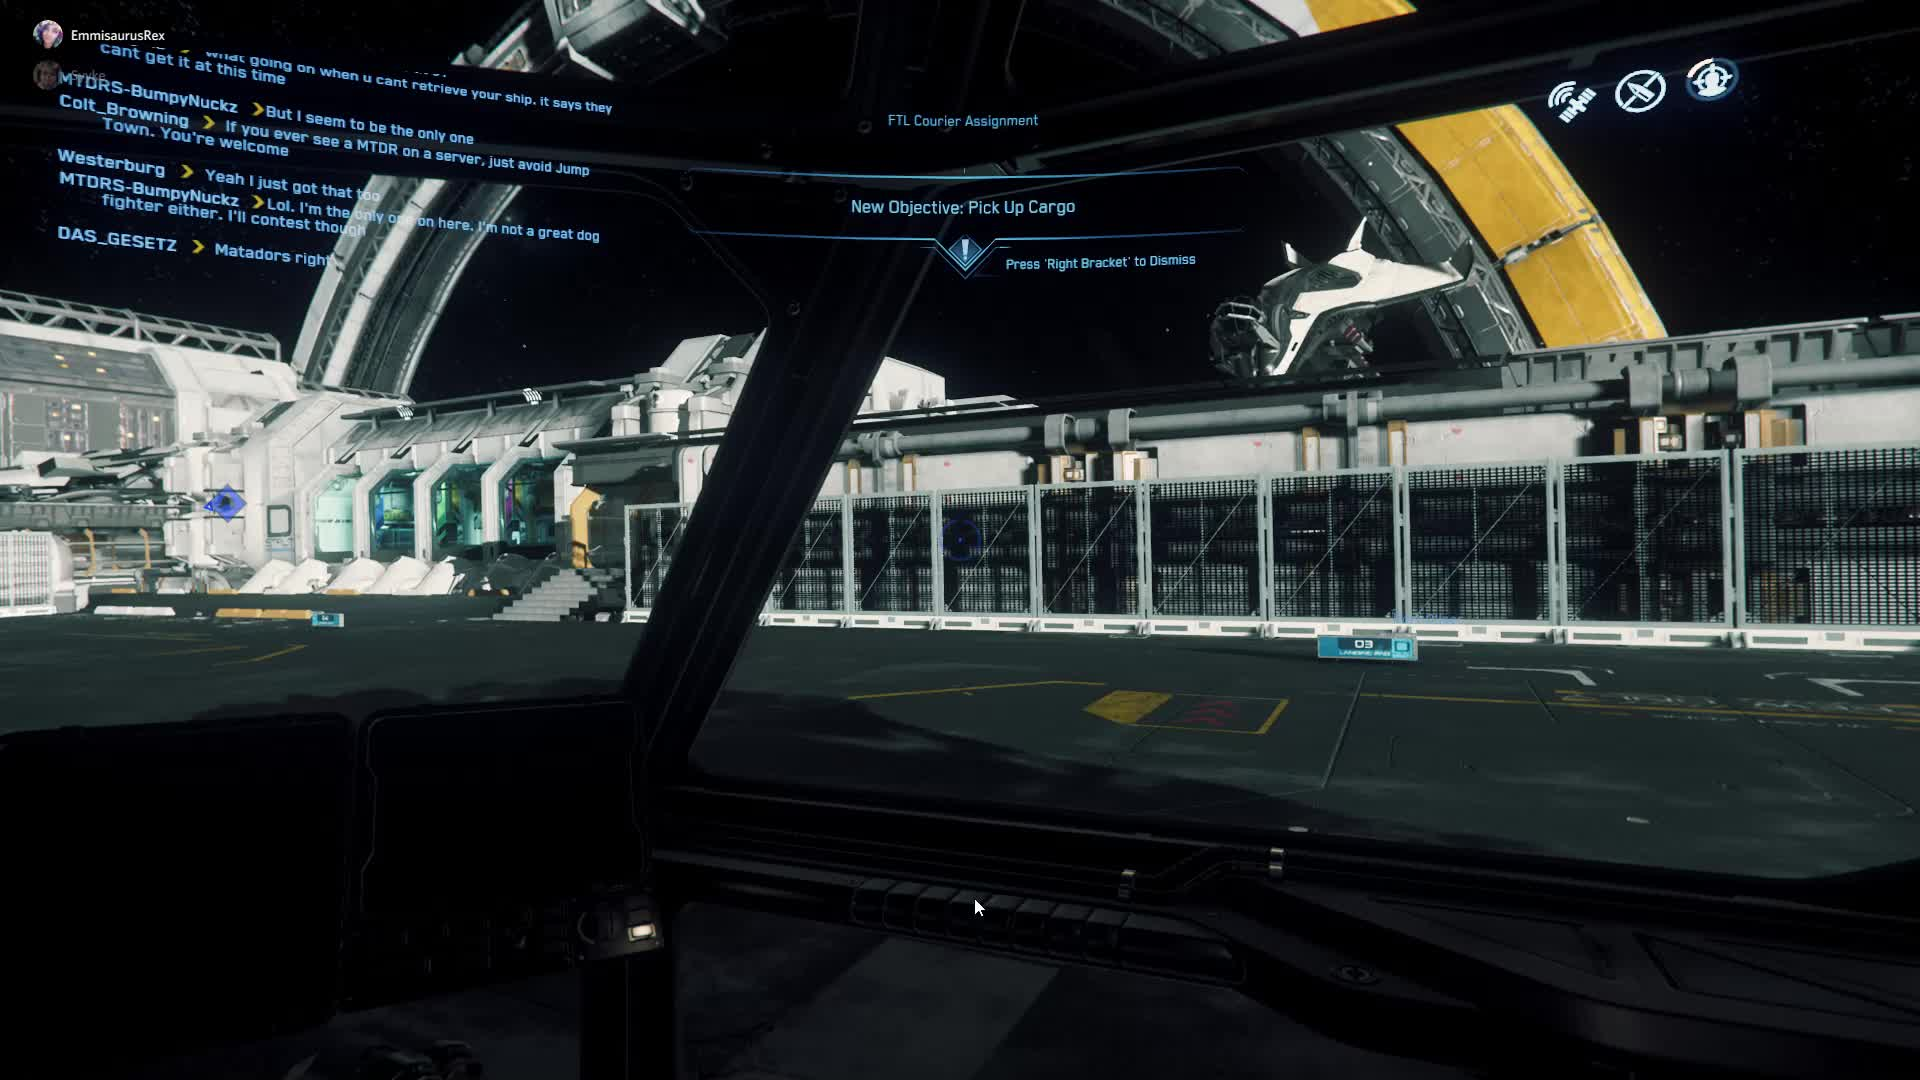 Star Citizen, StarCitizen, Uhm..., star citizen, starcitizen, uhm..., Just sitting here, refuelling my ship when I see something out of the corner of my eye... GIFs